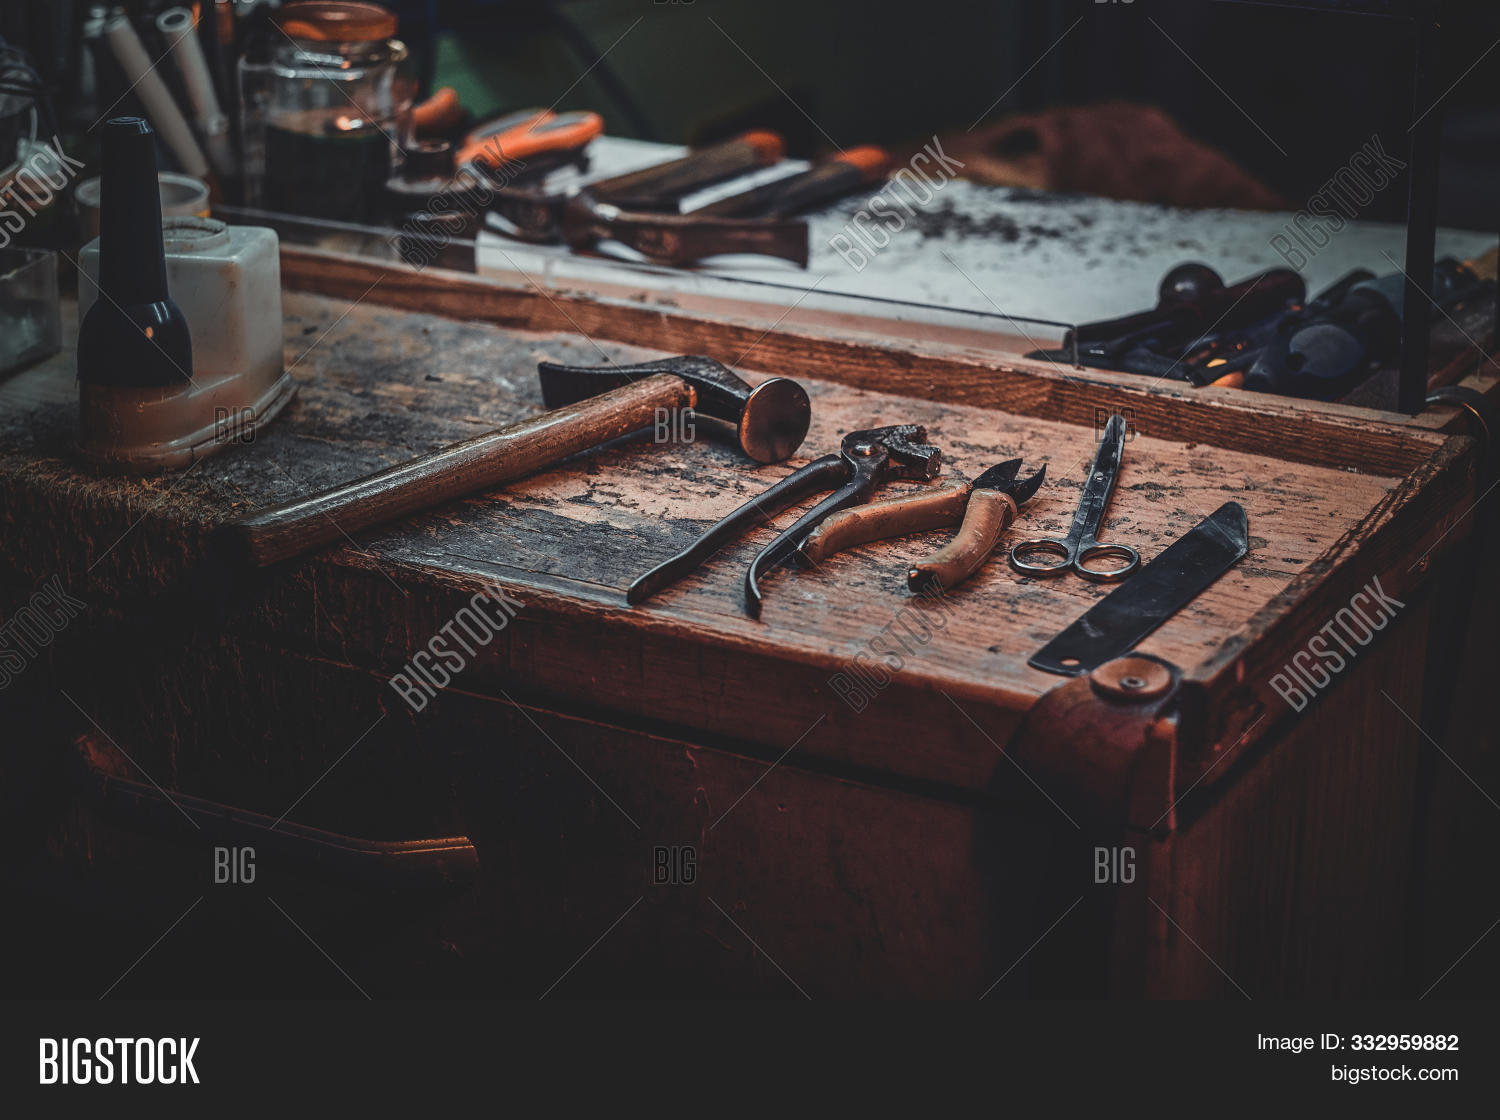 Workplace Of Cobbler With Necessary Tools On It At Dark Workshop.